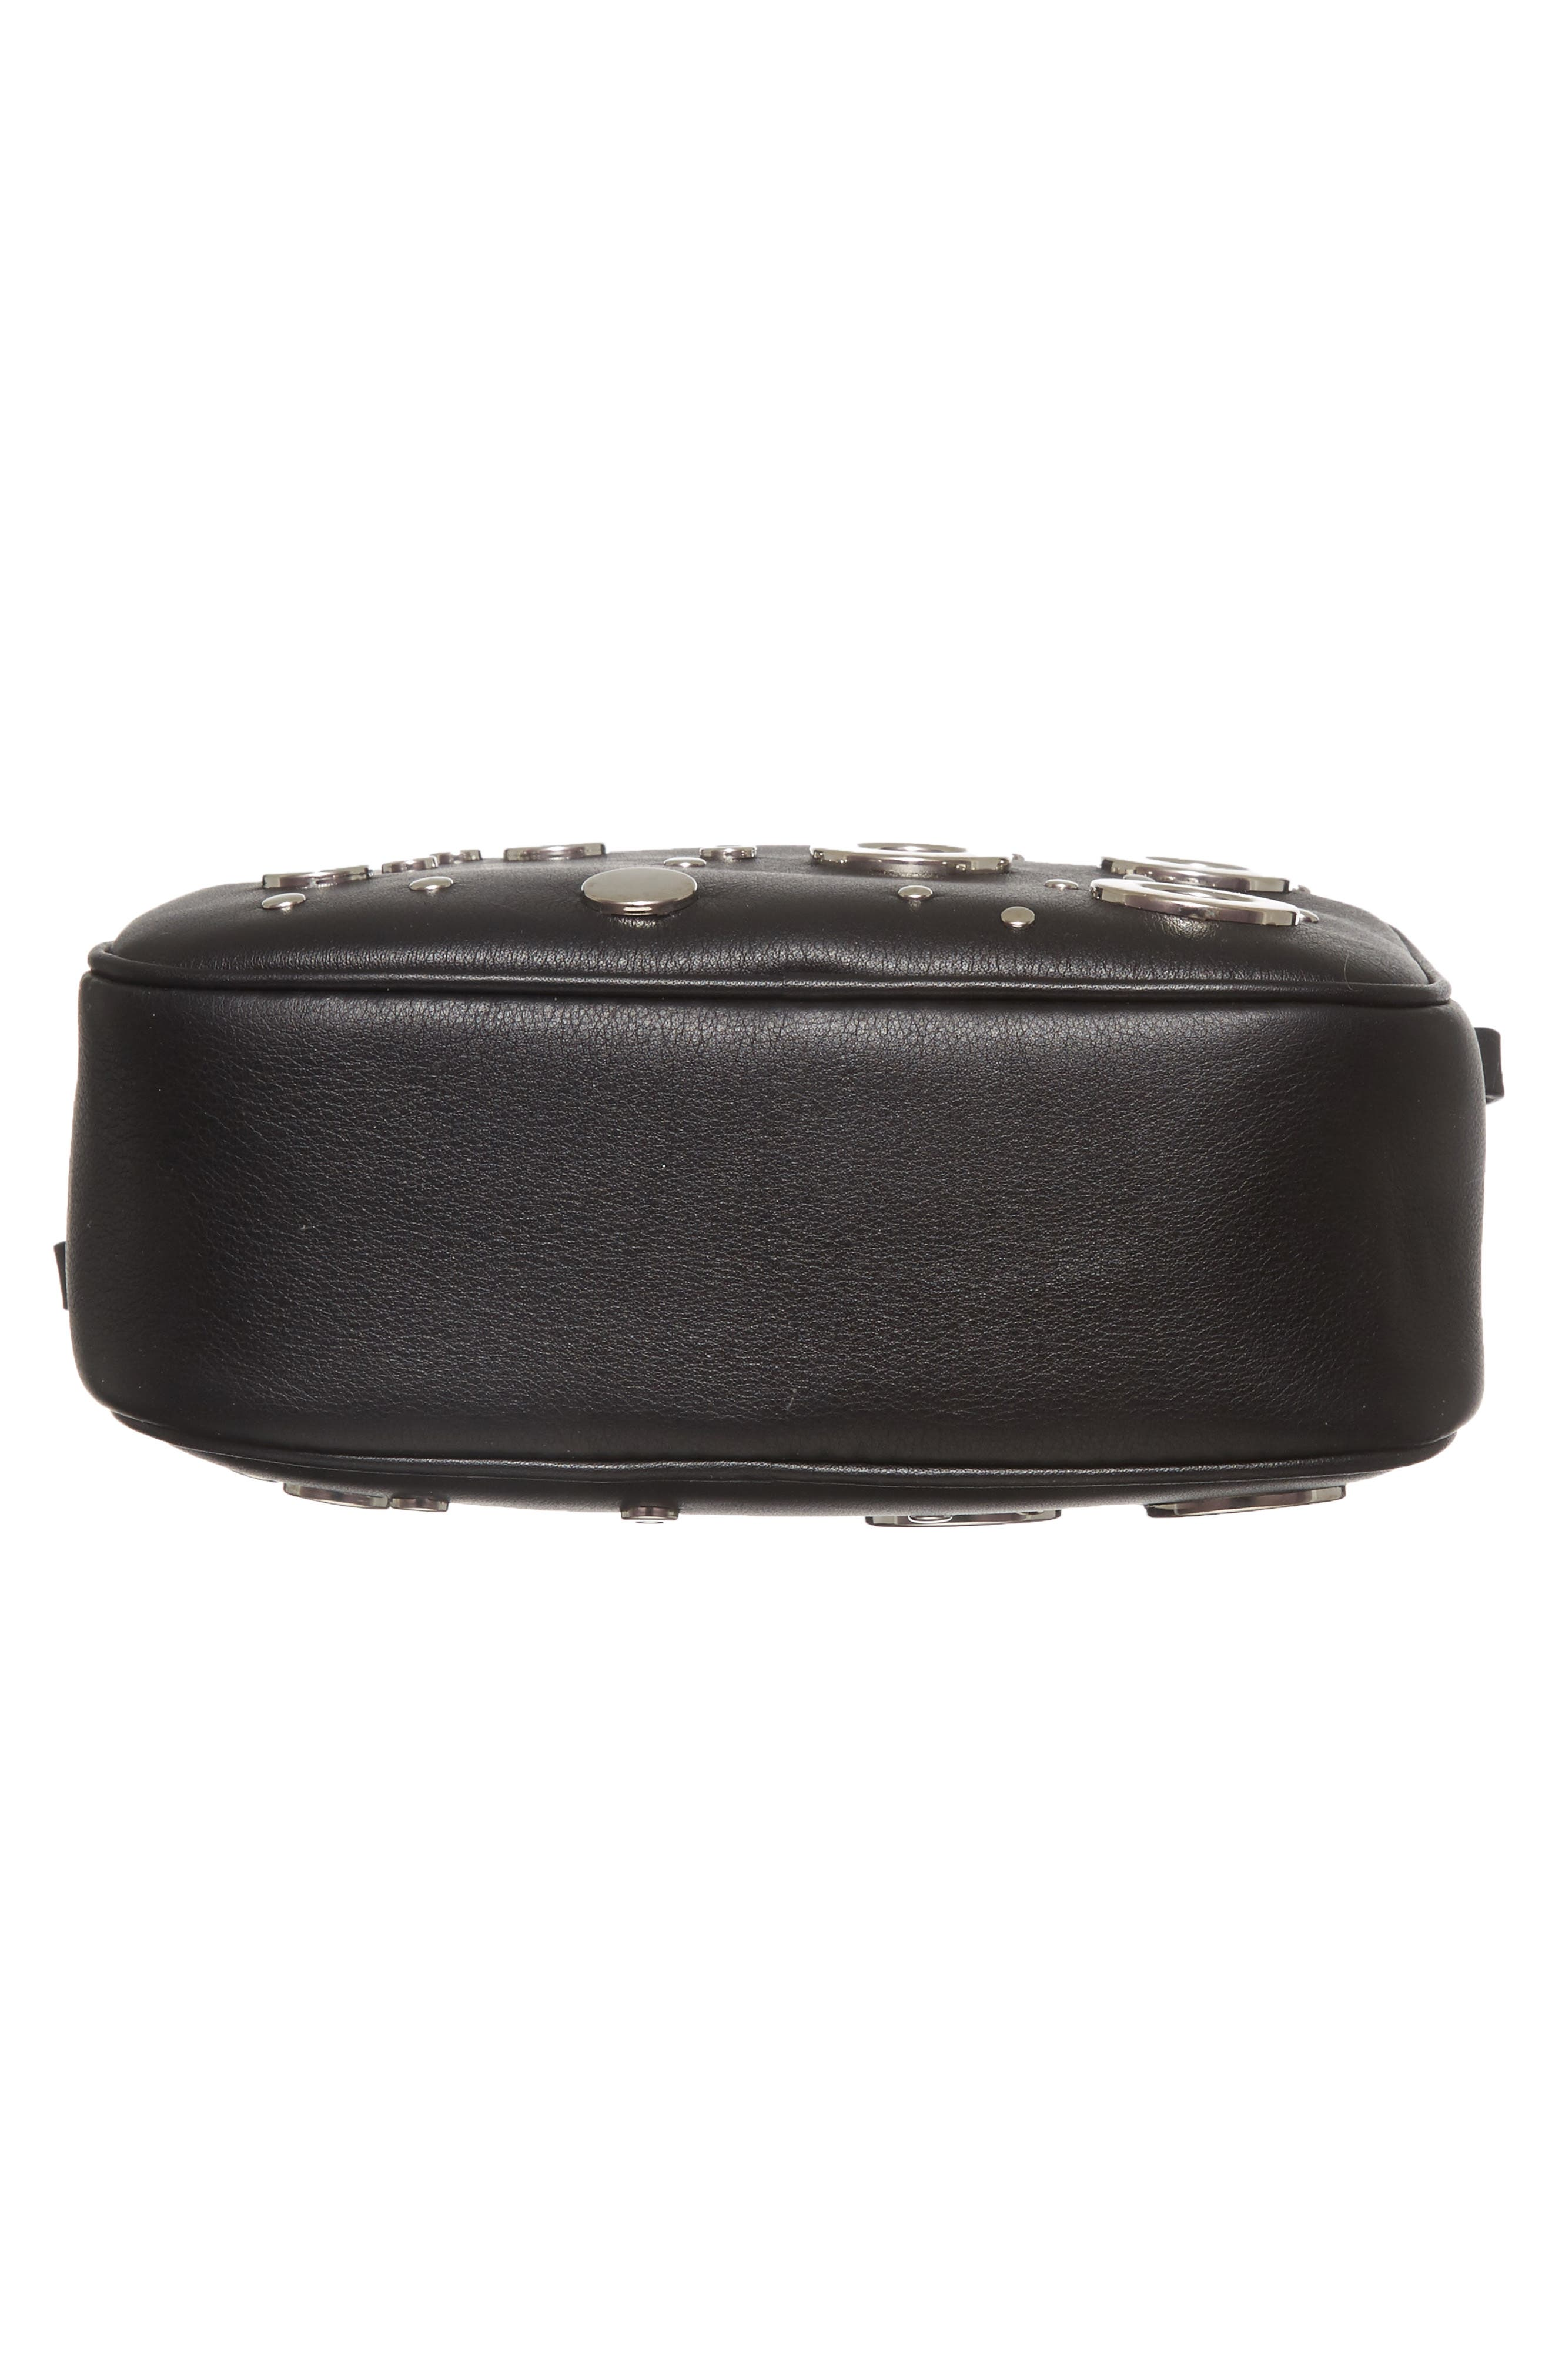 Small Leather Camera Bag,                             Alternate thumbnail 6, color,                             001